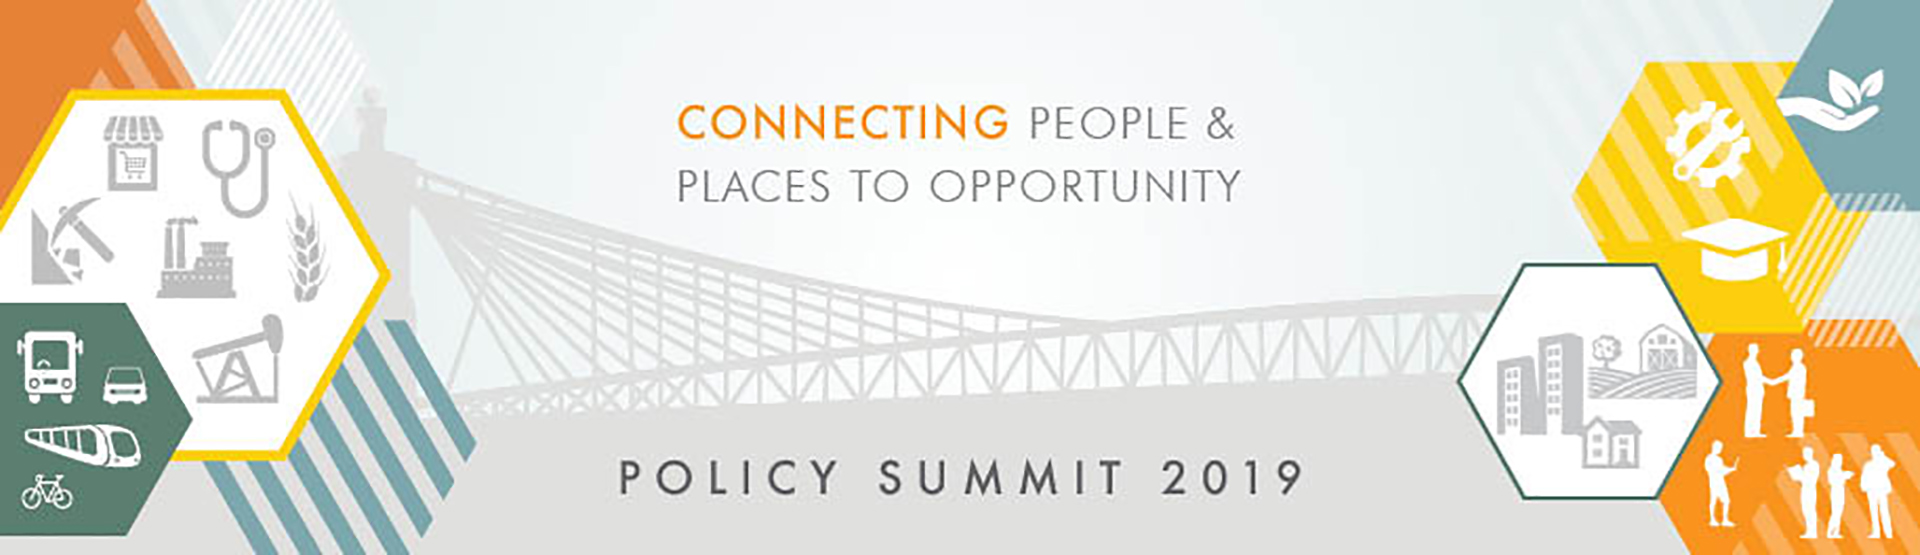 Policy Summit 2019 banner